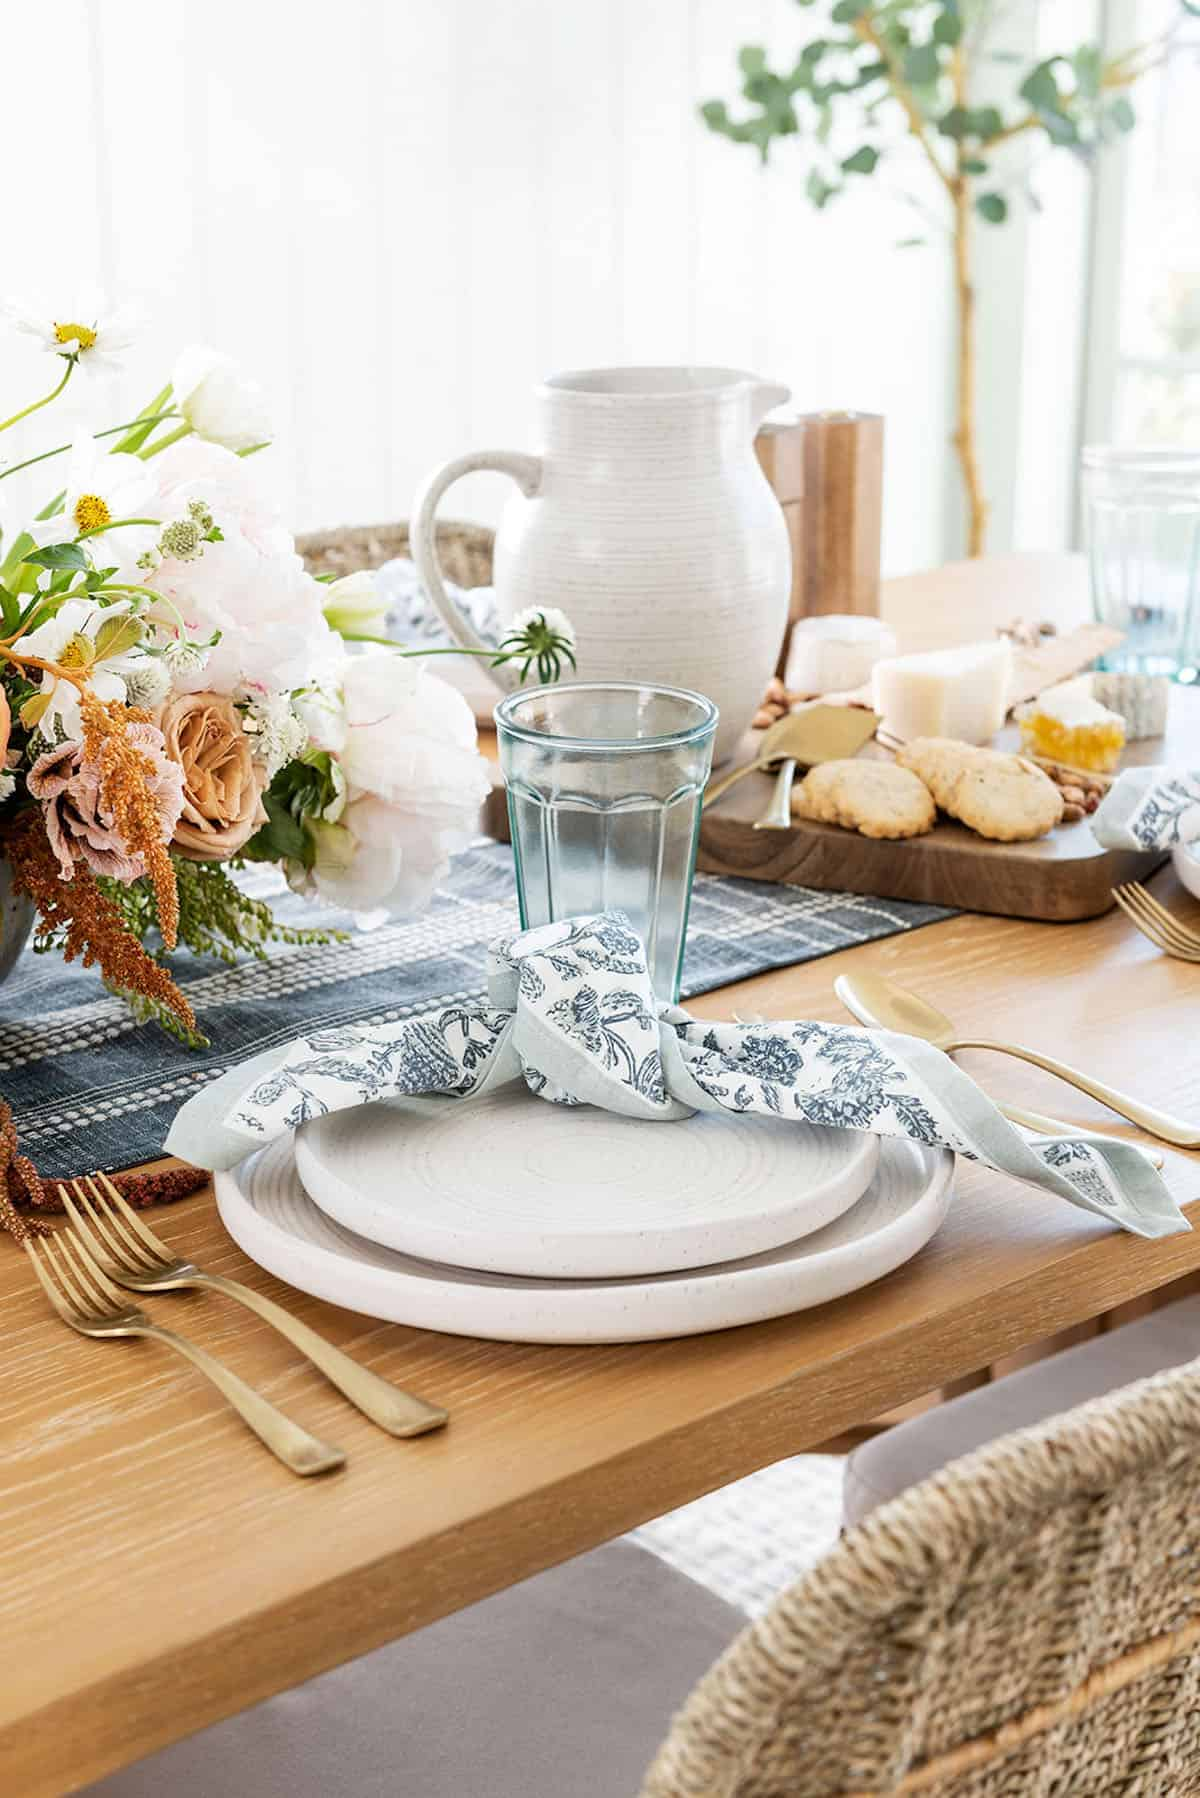 spring table setting with flowers plates and food